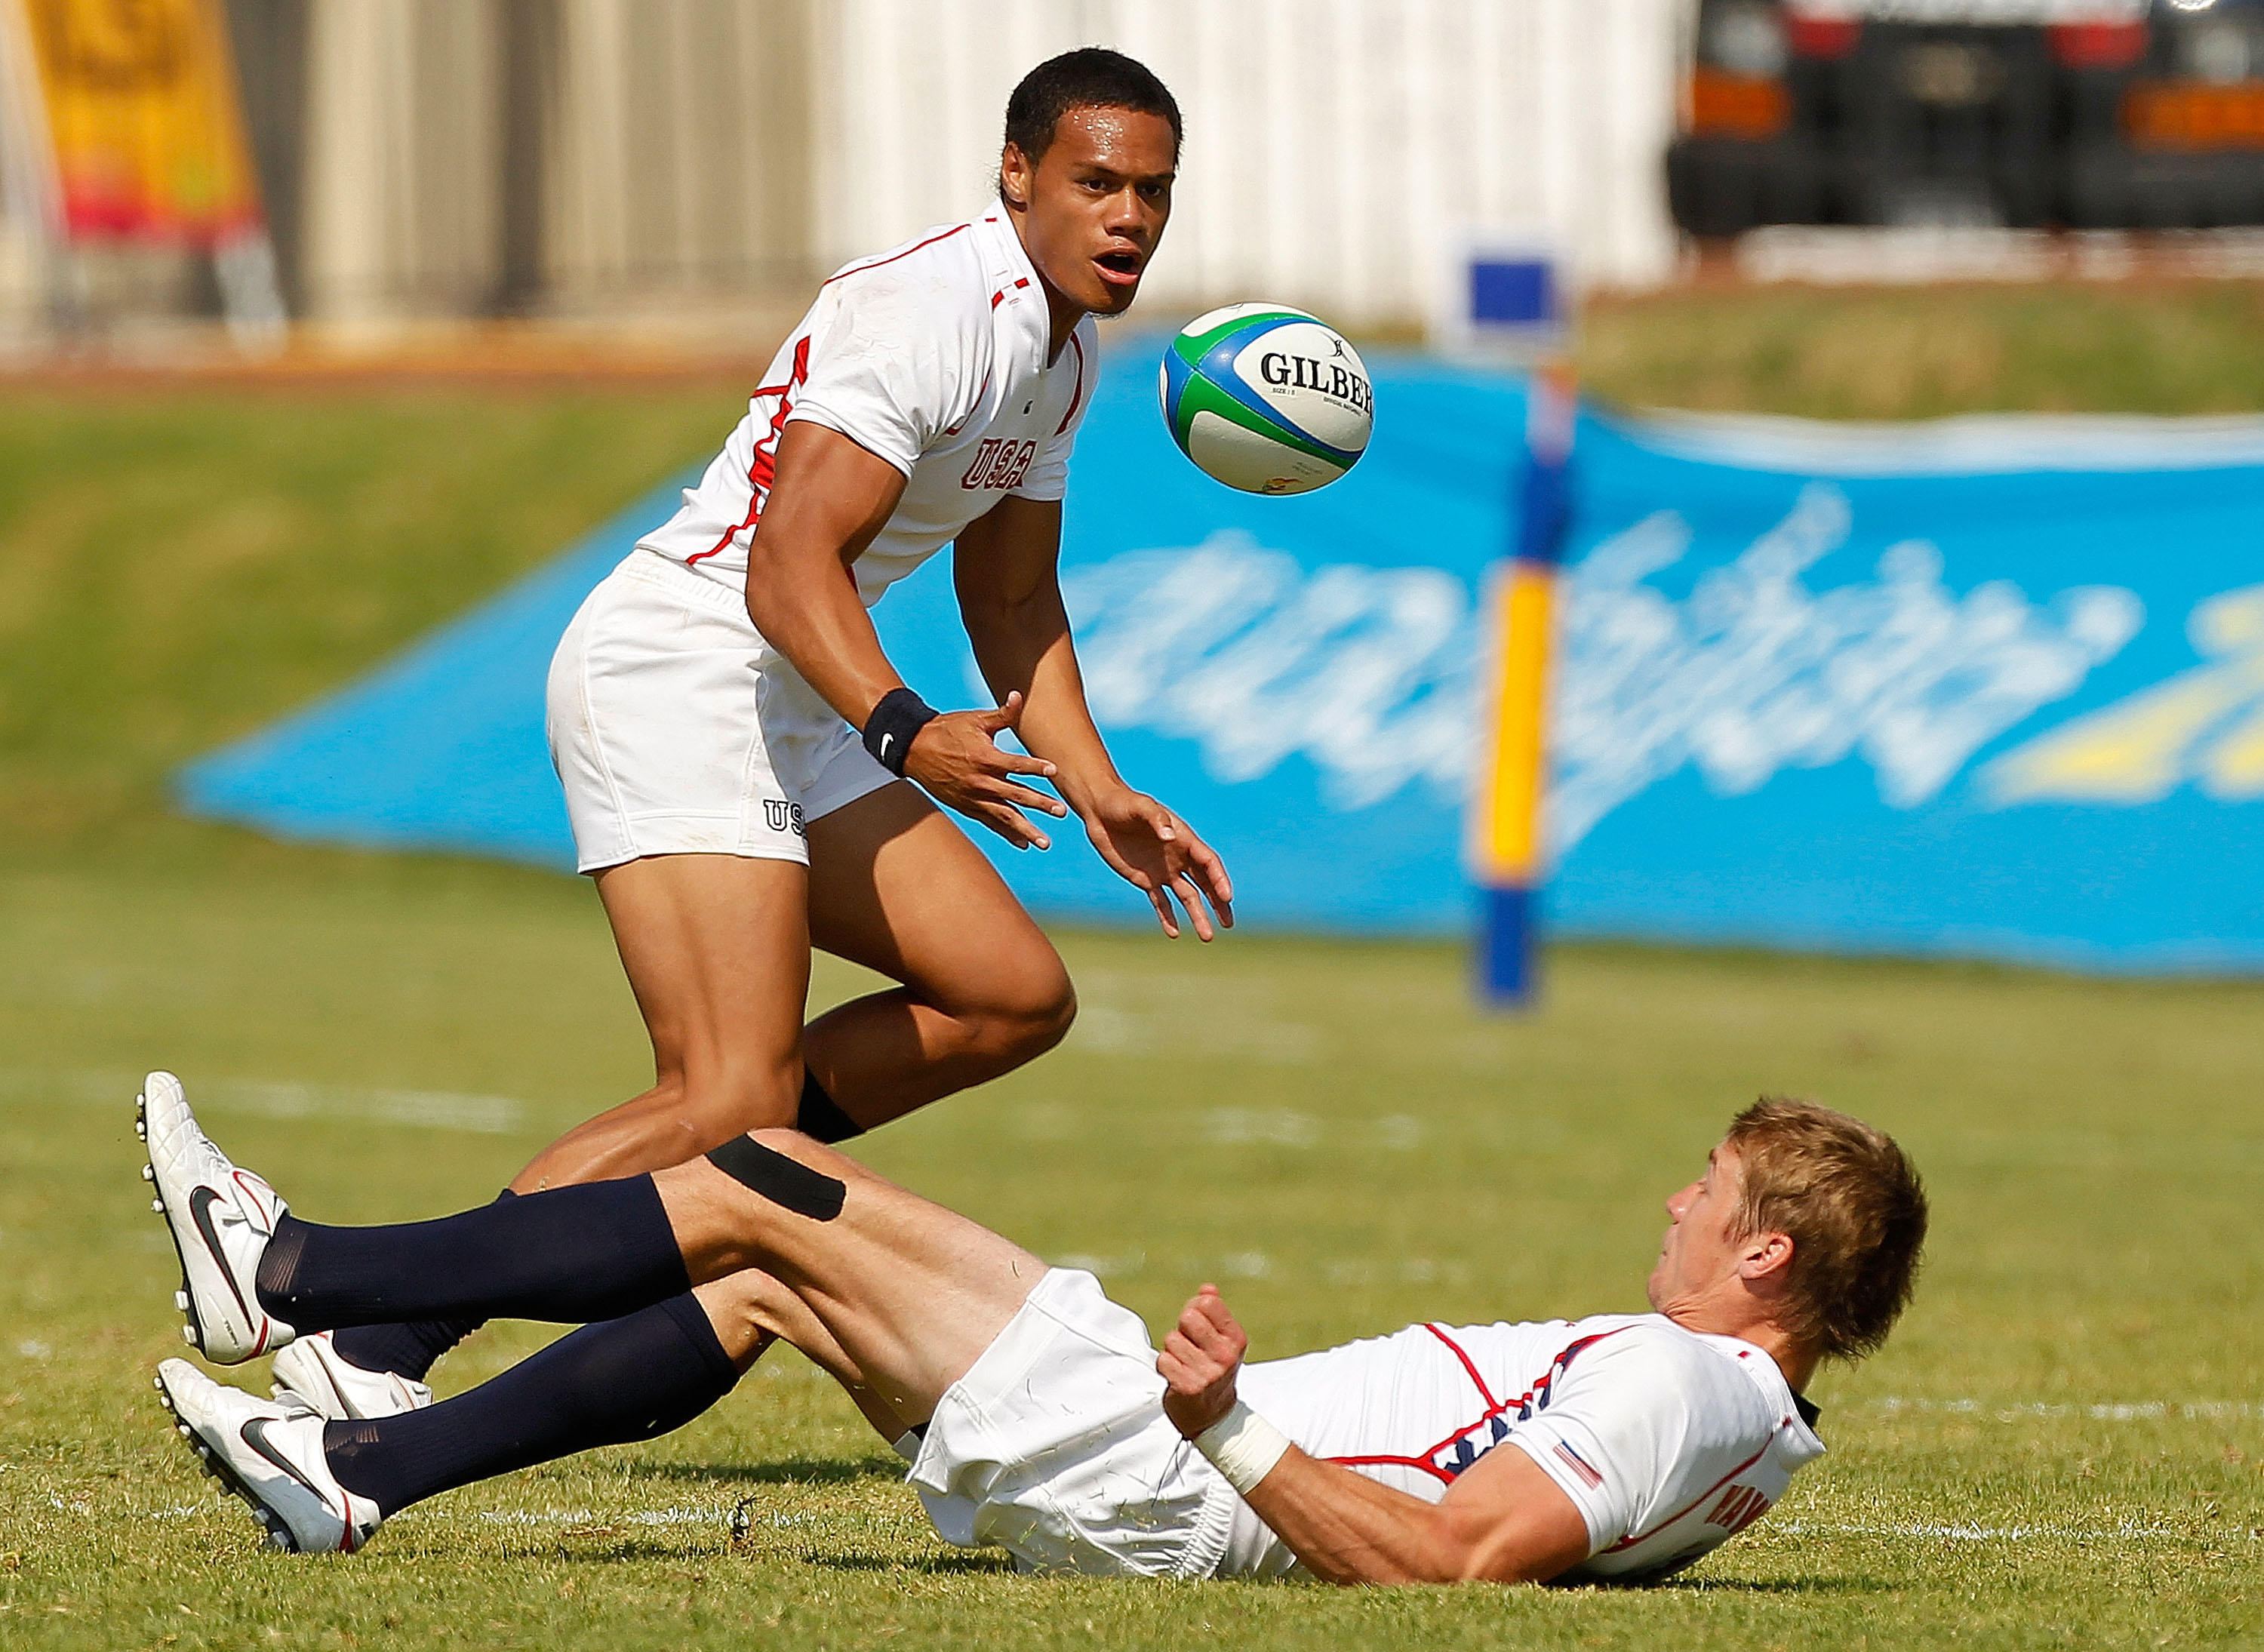 Eagles Action at Day One of USA Sevens